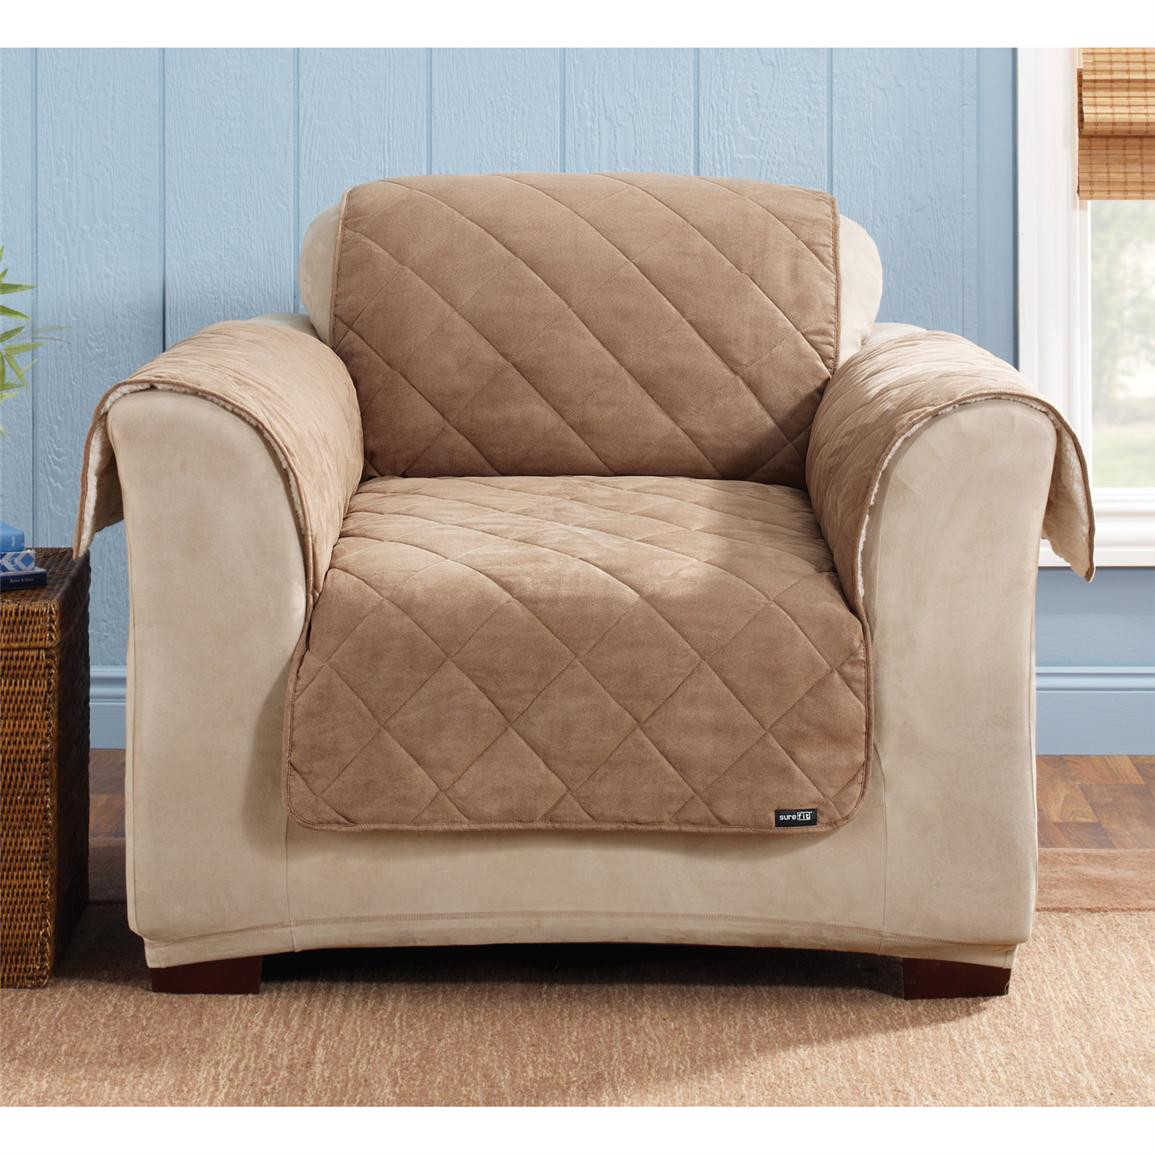 Best ideas about Surefit Chair Cover . Save or Pin Sure Fit Reversible Suede Sherpa Chair Pet Cover Now.